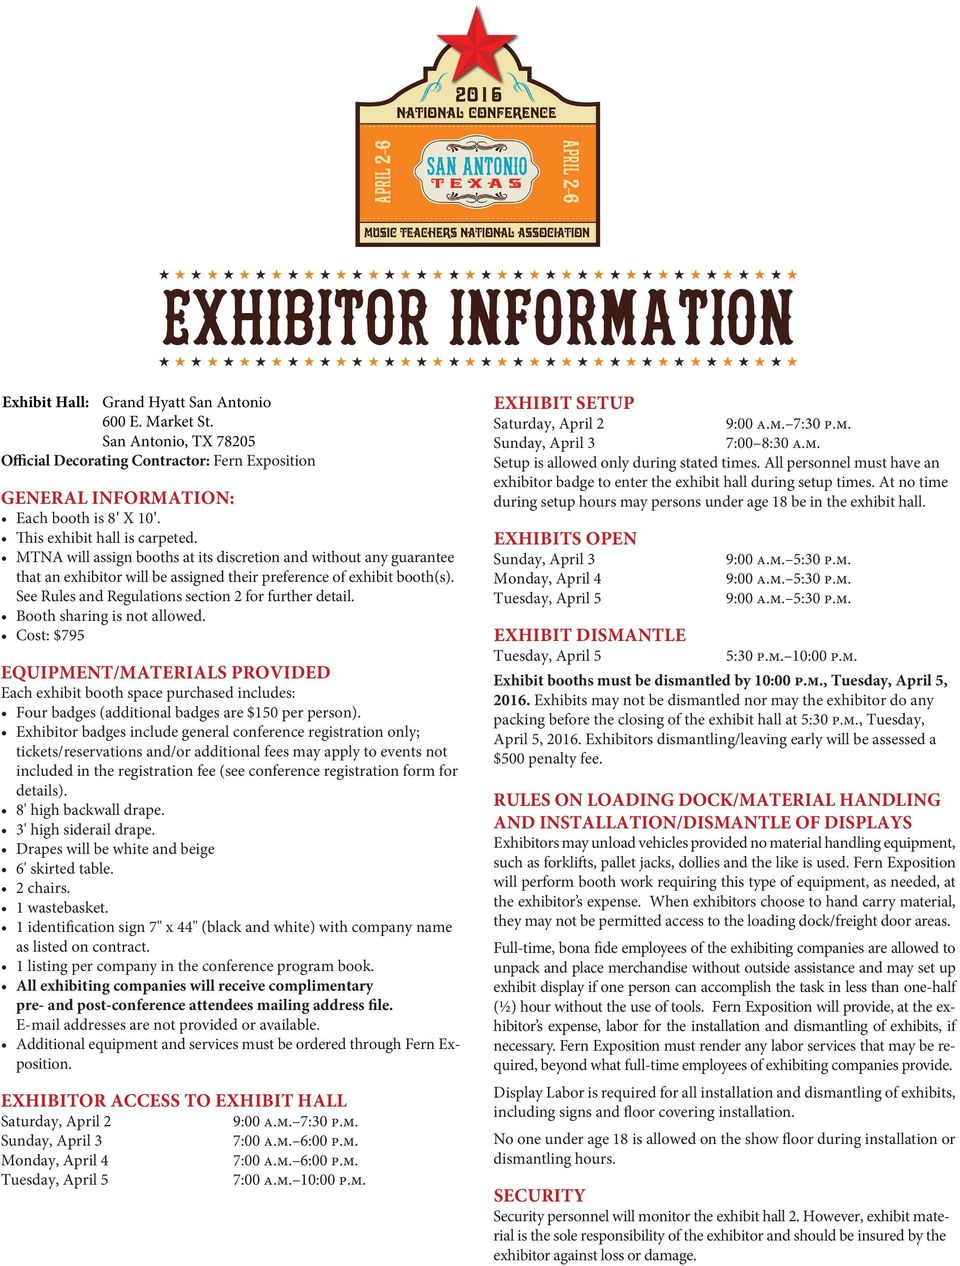 See Rules and Regulations section 2 for further detail. Booth sharing is not allowed.